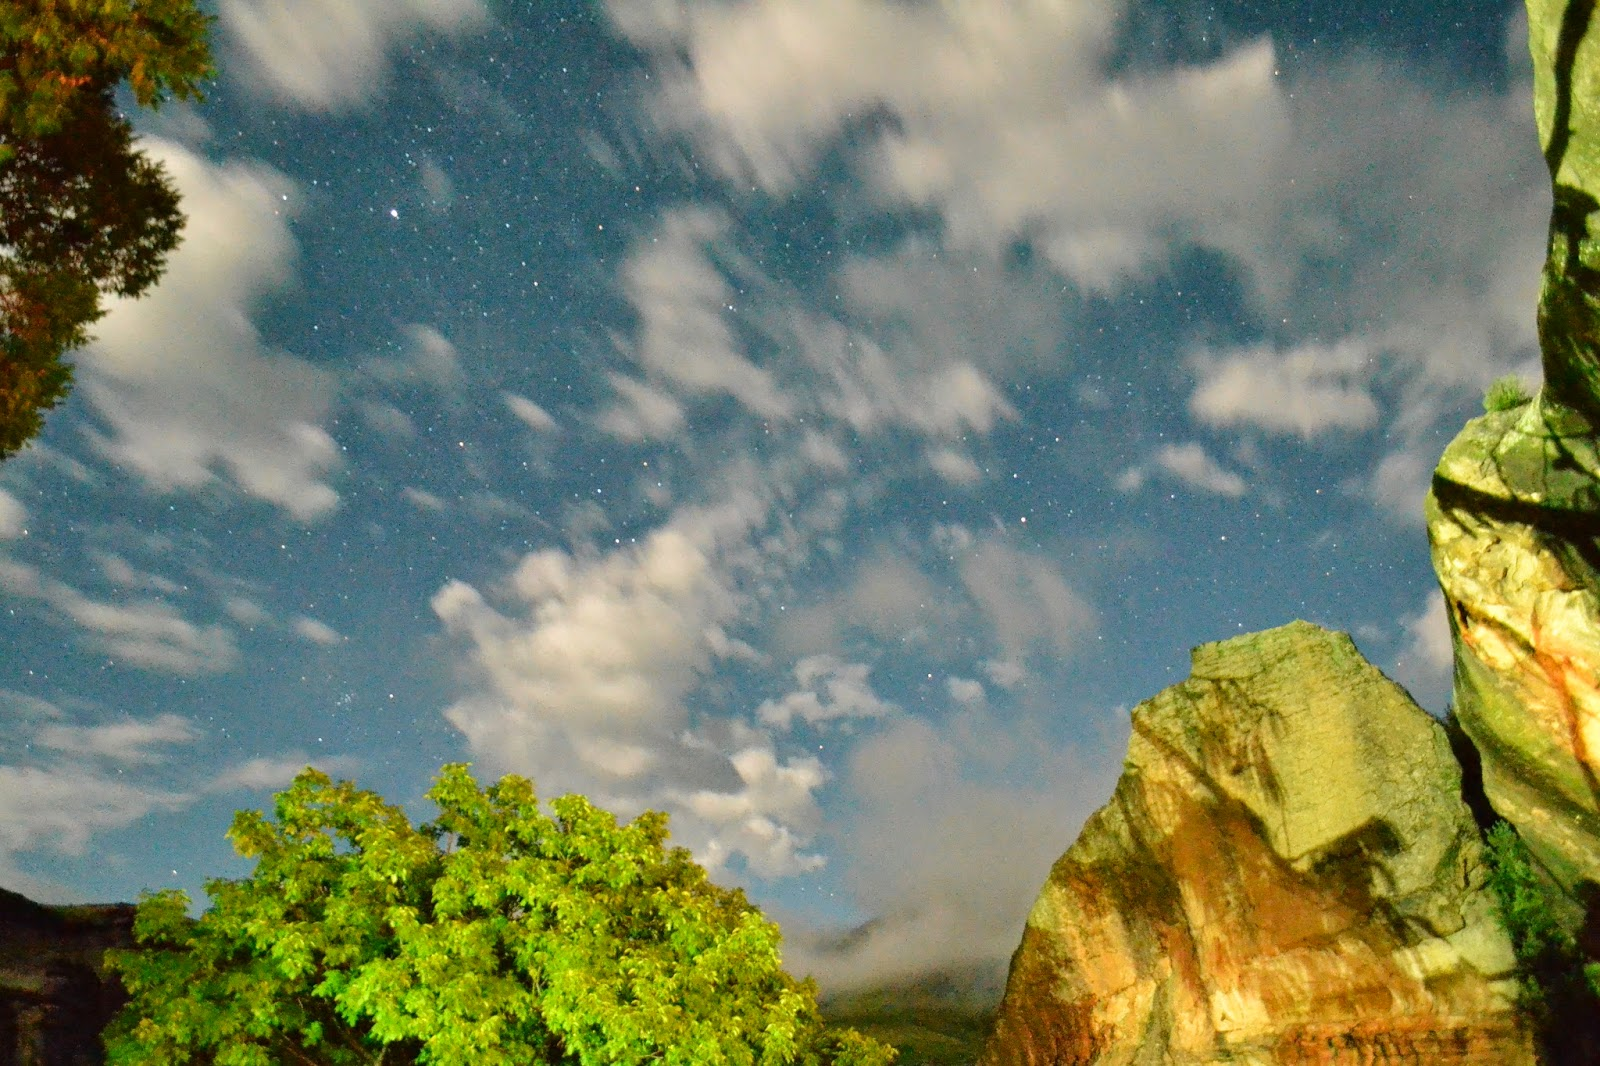 Tree, rocks and fast moving clouds in a night sky